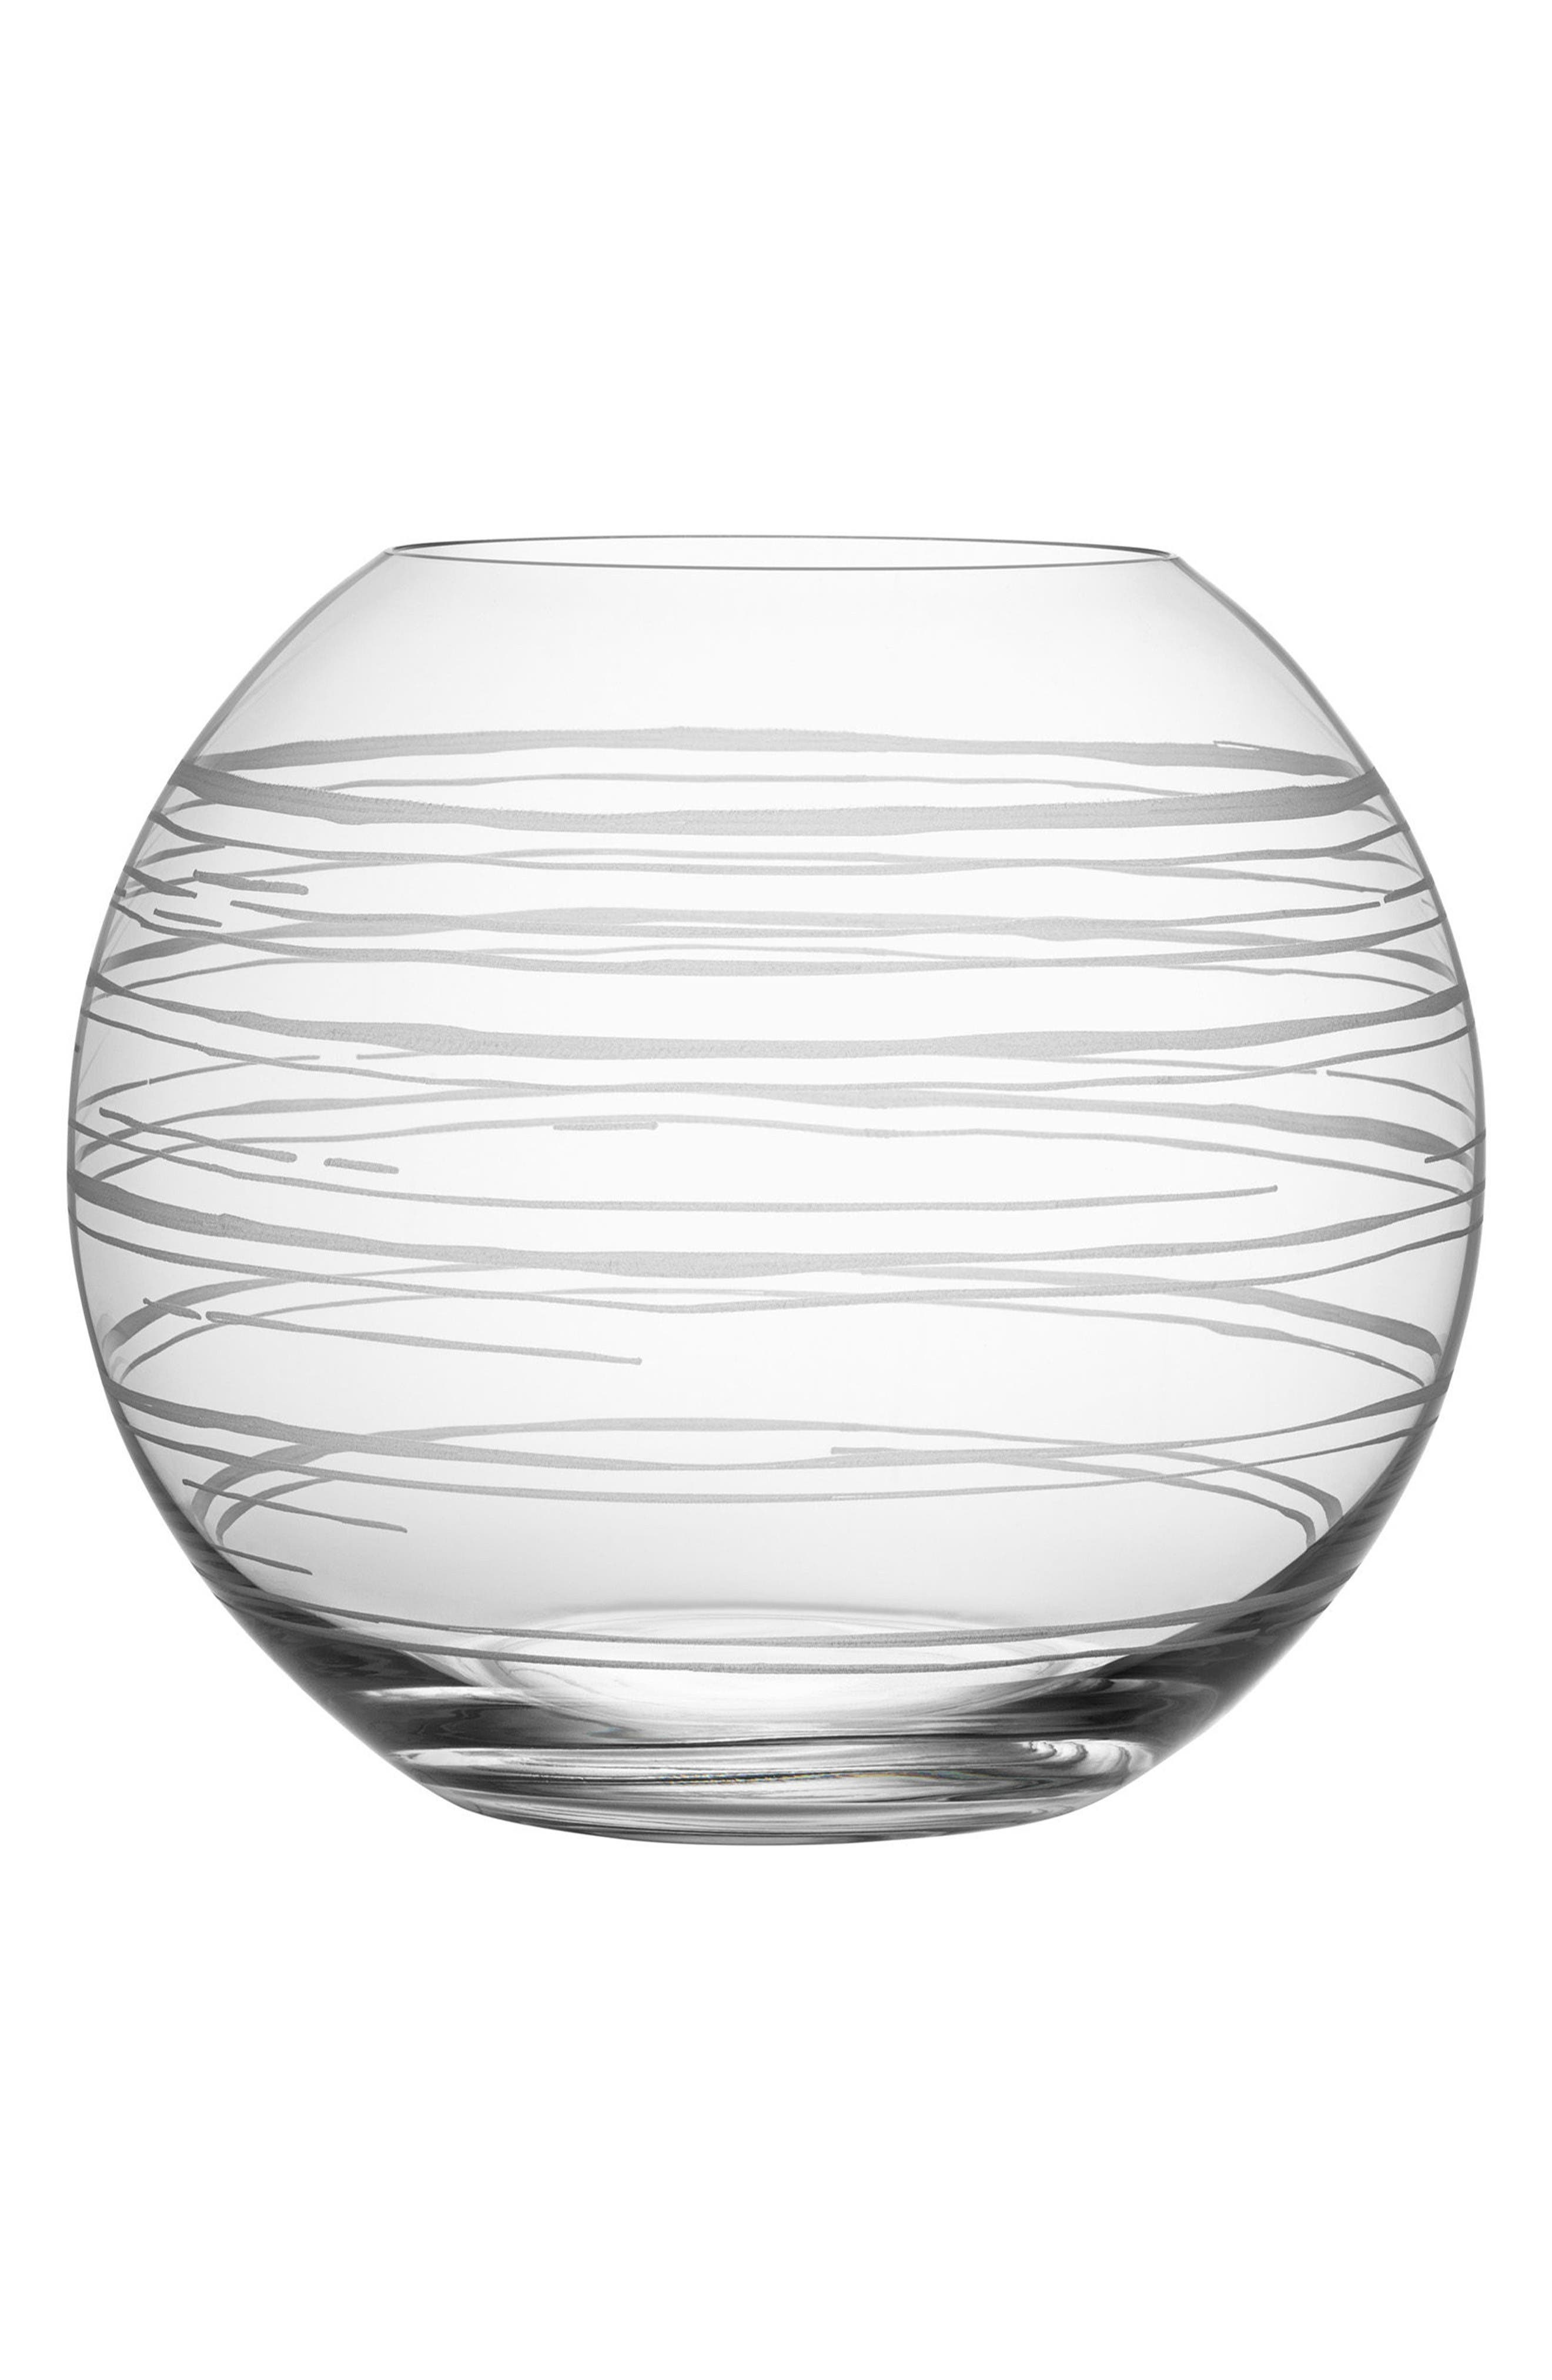 Alternate Image 1 Selected - Orrefors Graphic Round Vase